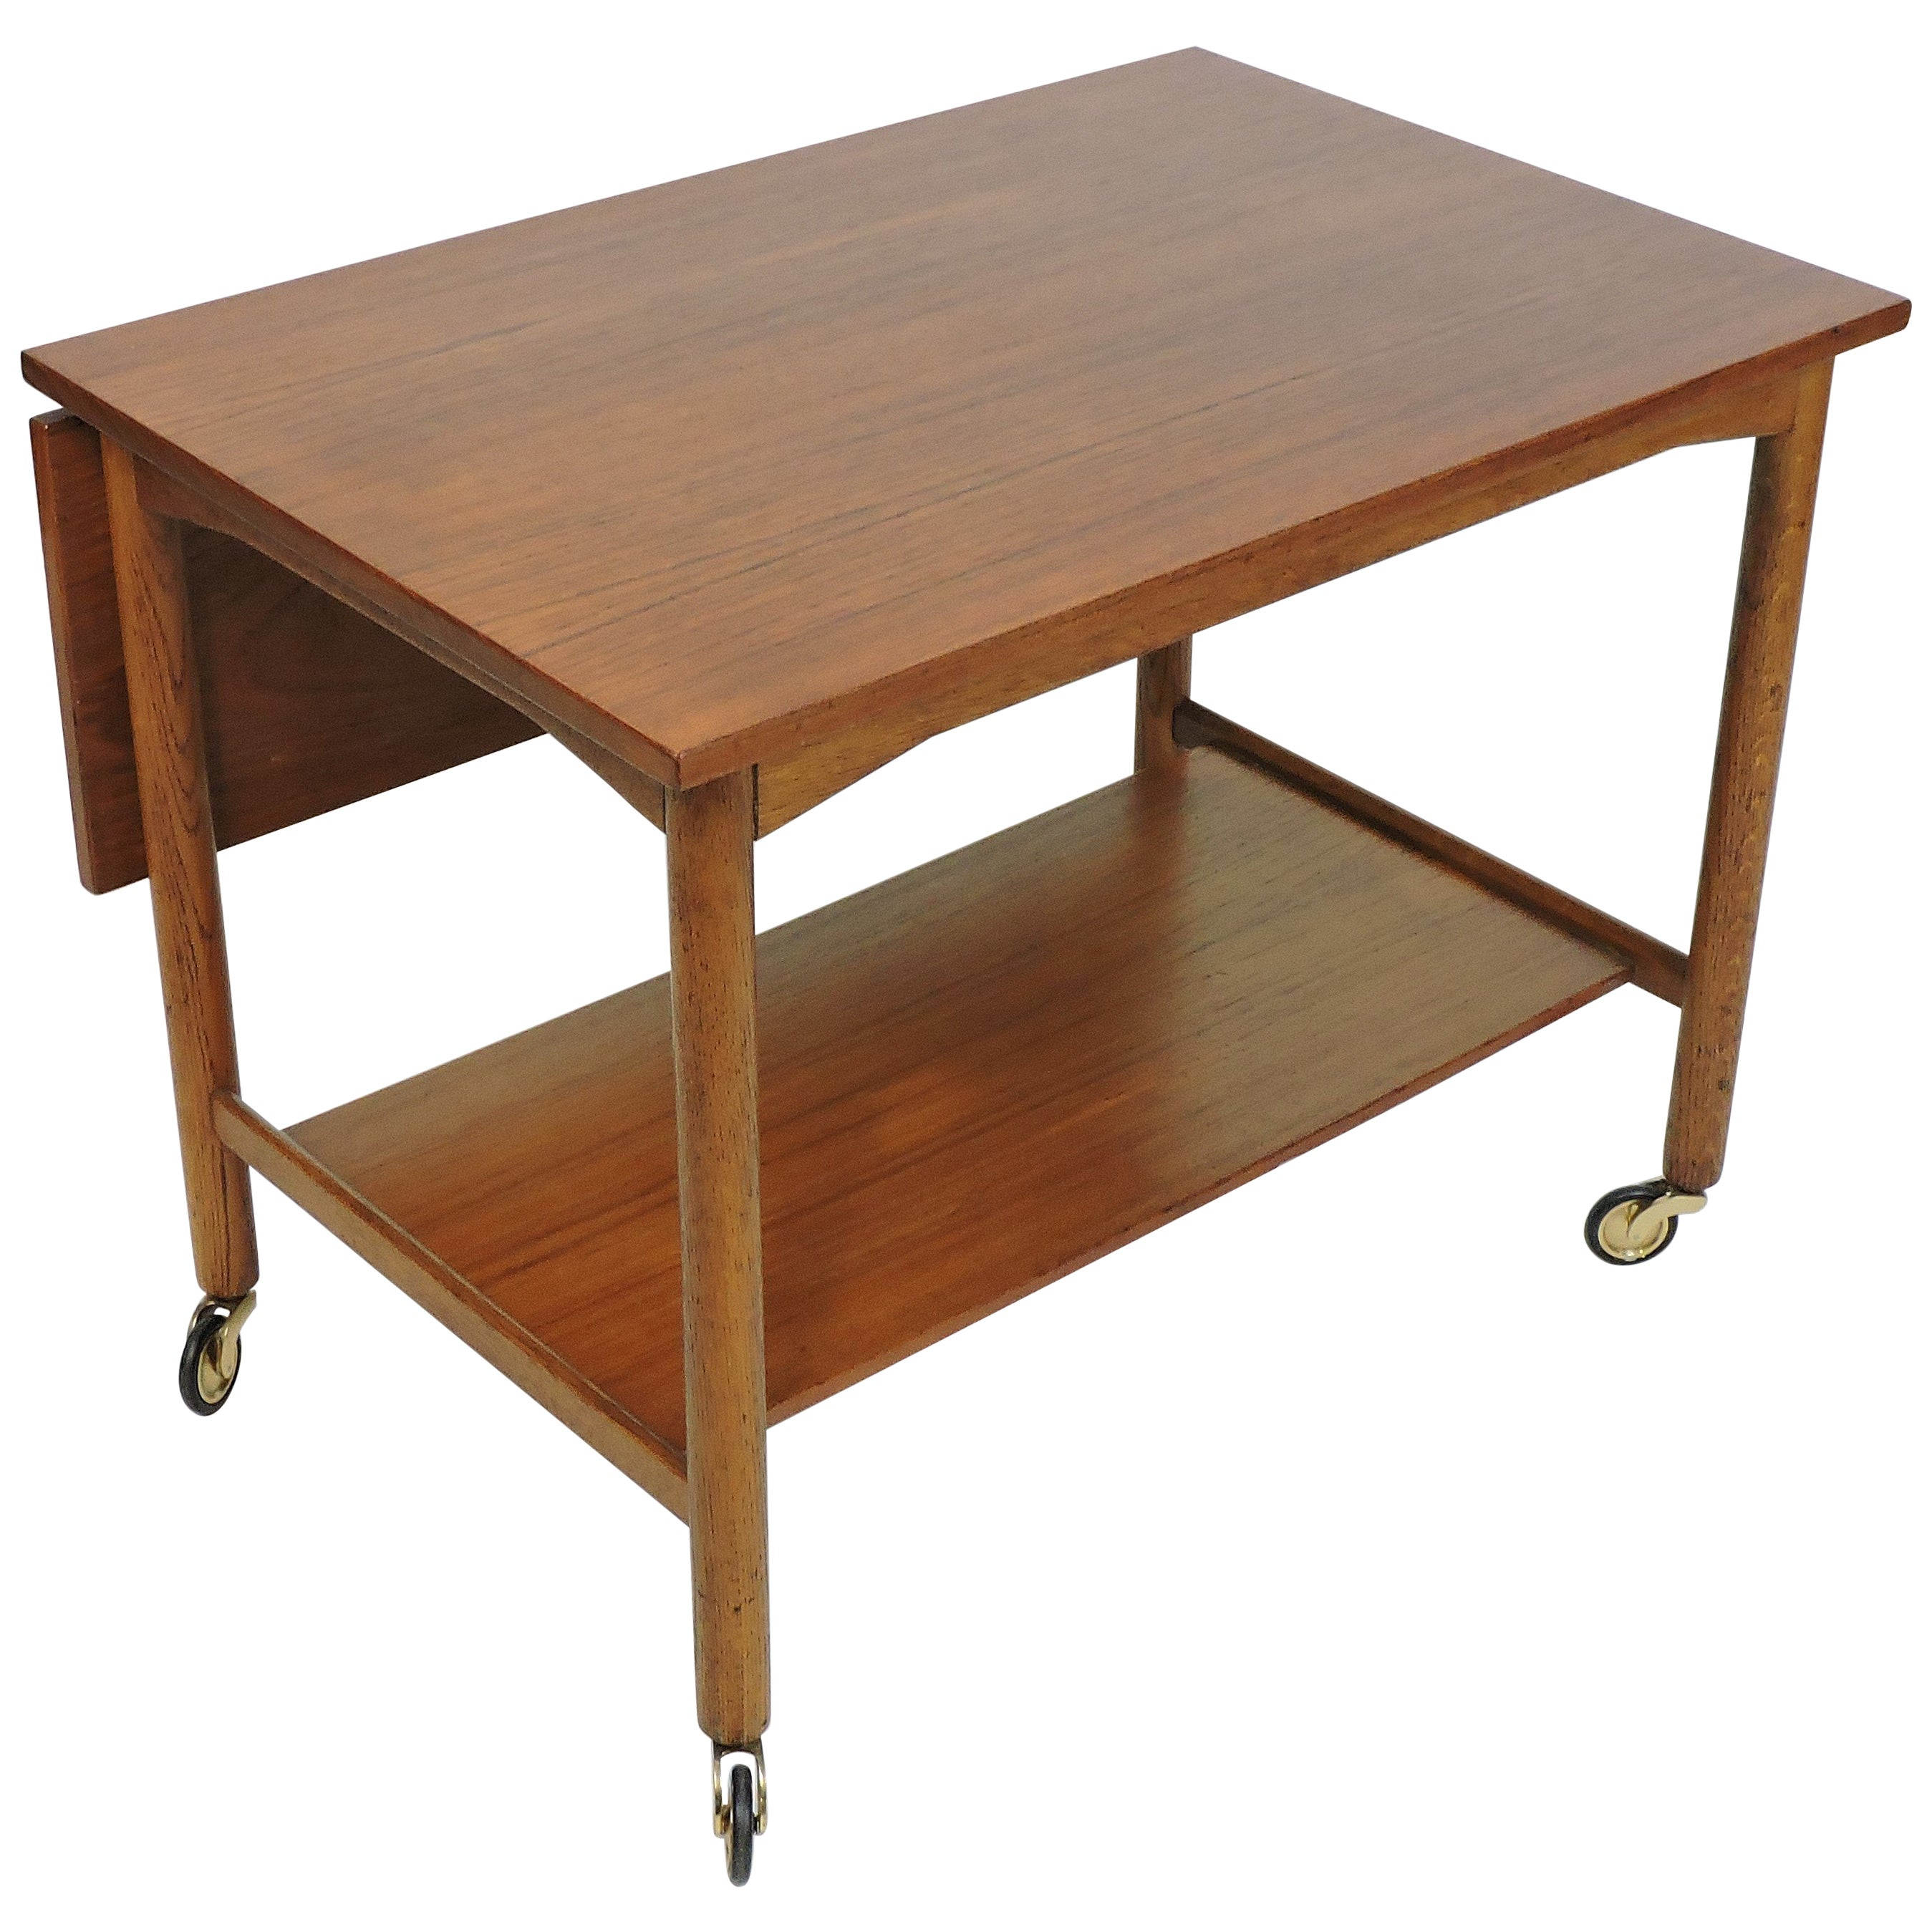 Danish Modern Scandinavian Teak Expandable Two-Tier Bar Serving Cart